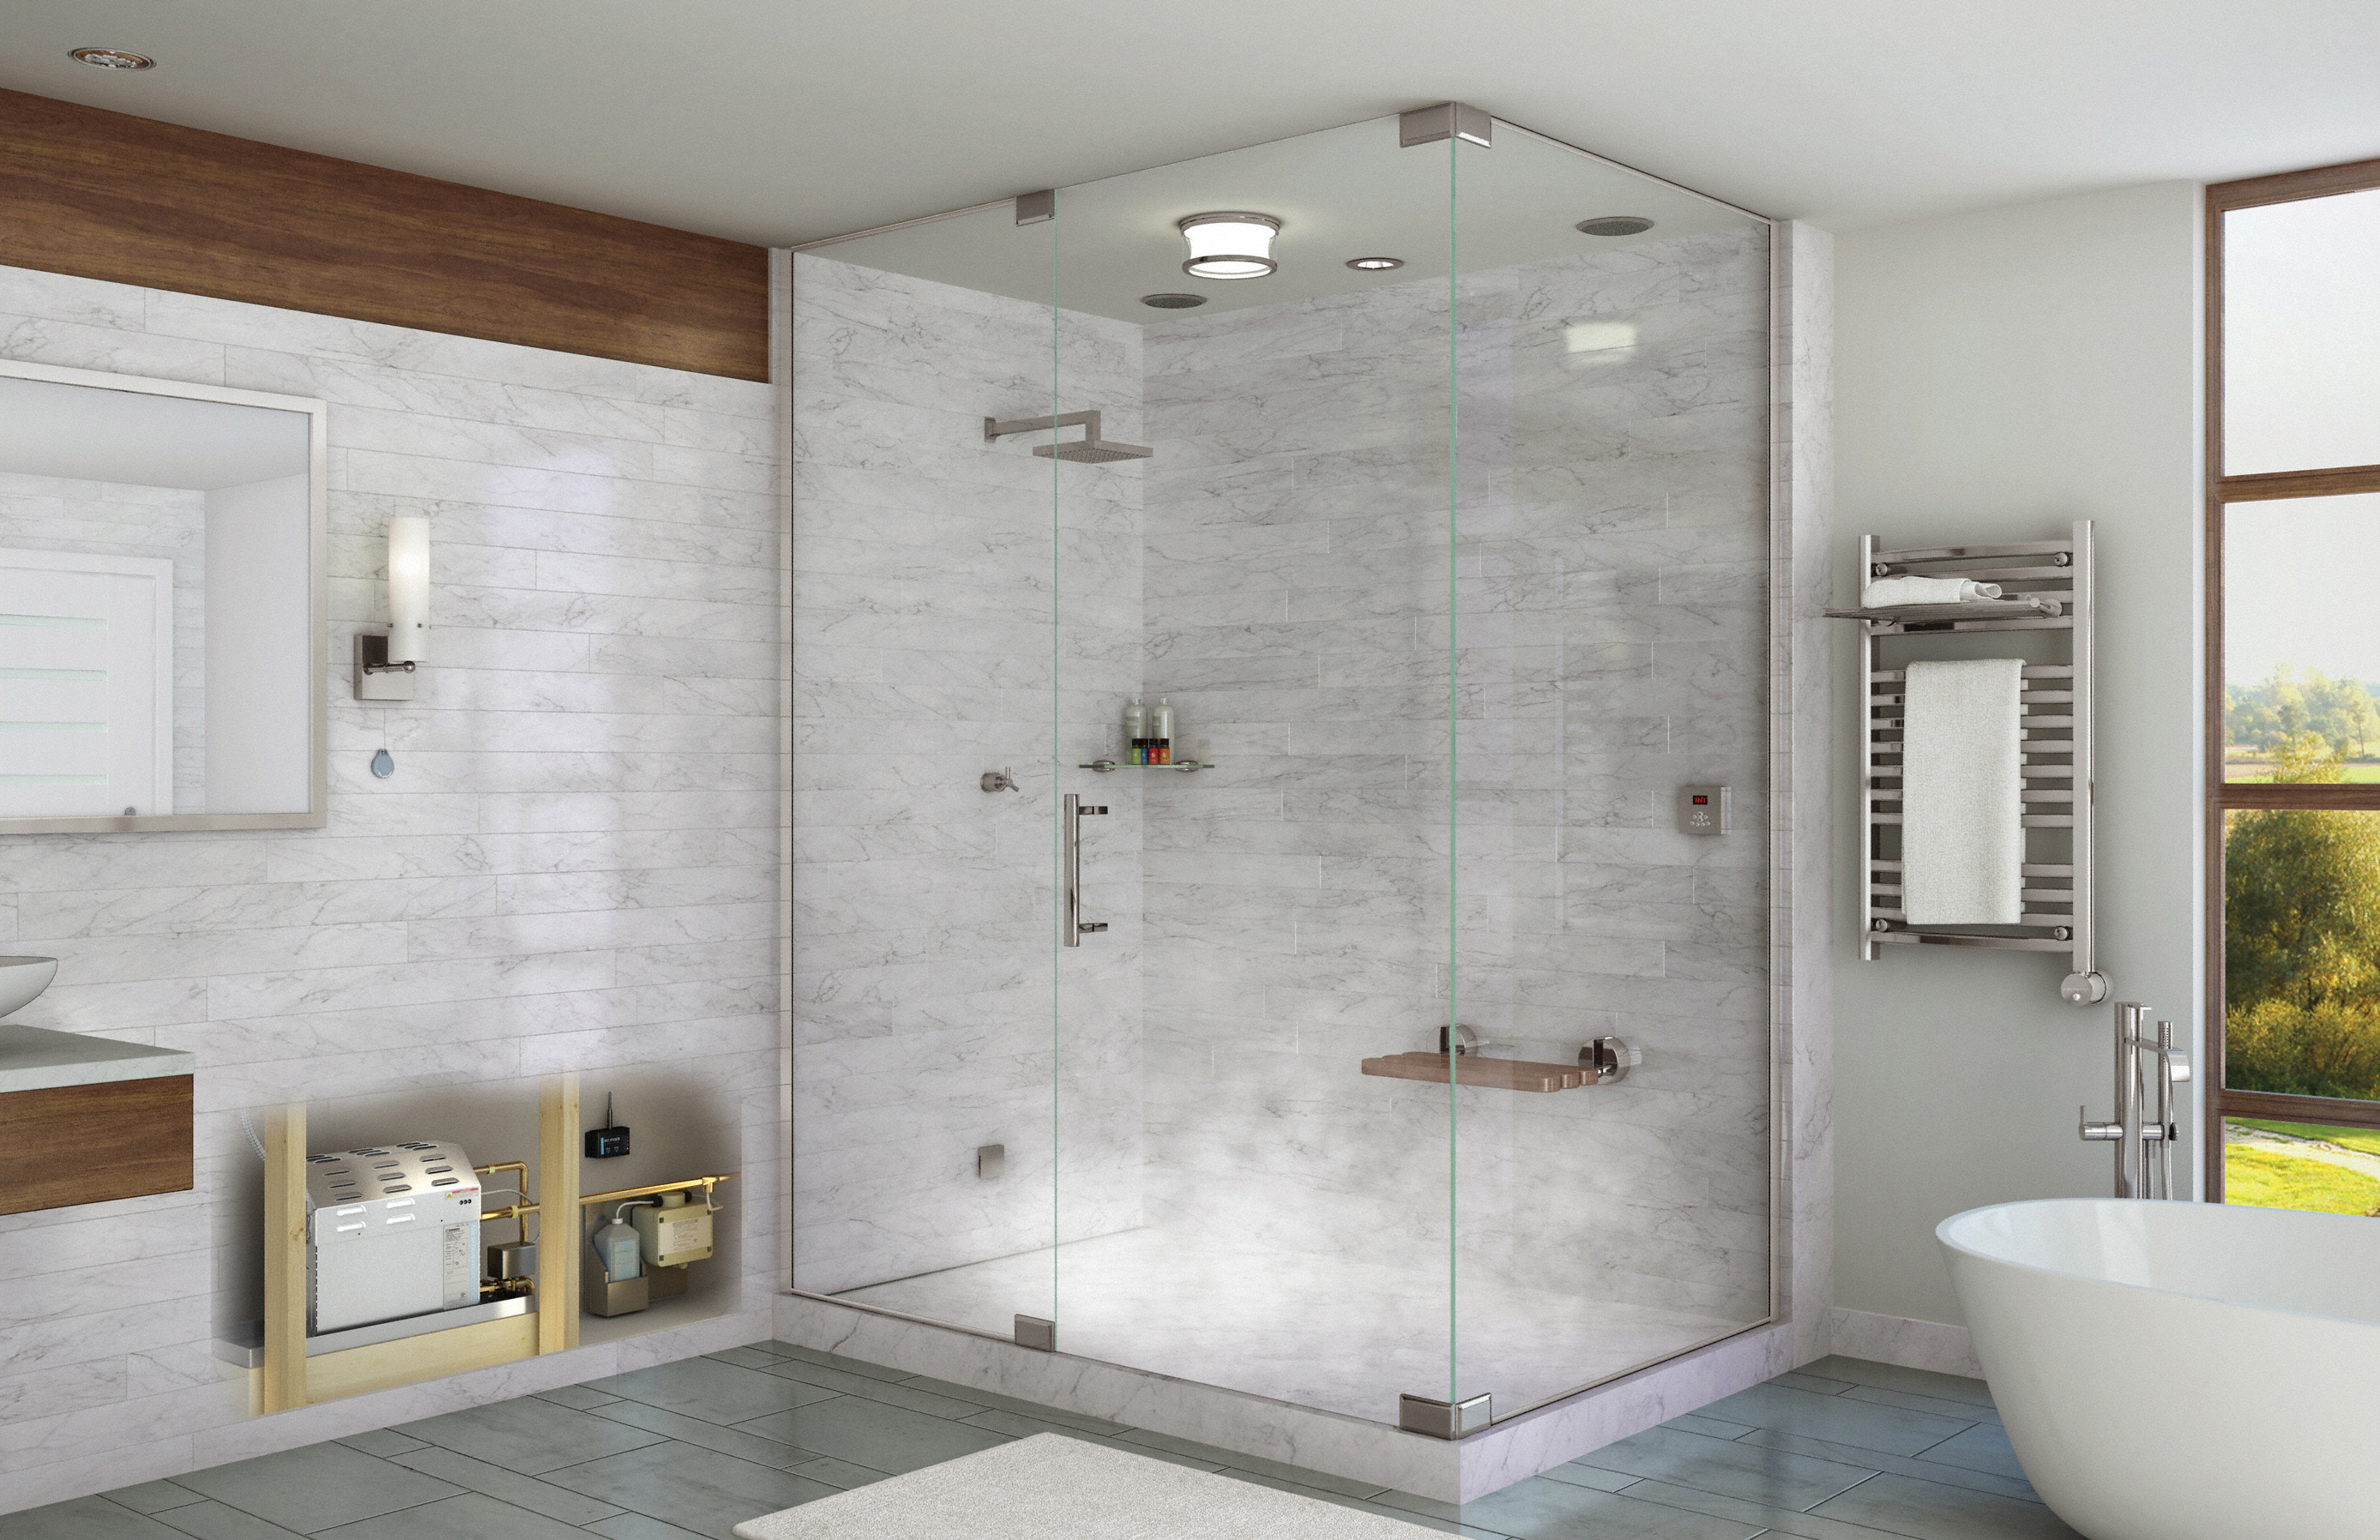 home steam rooms designs - Home Steam Room Design